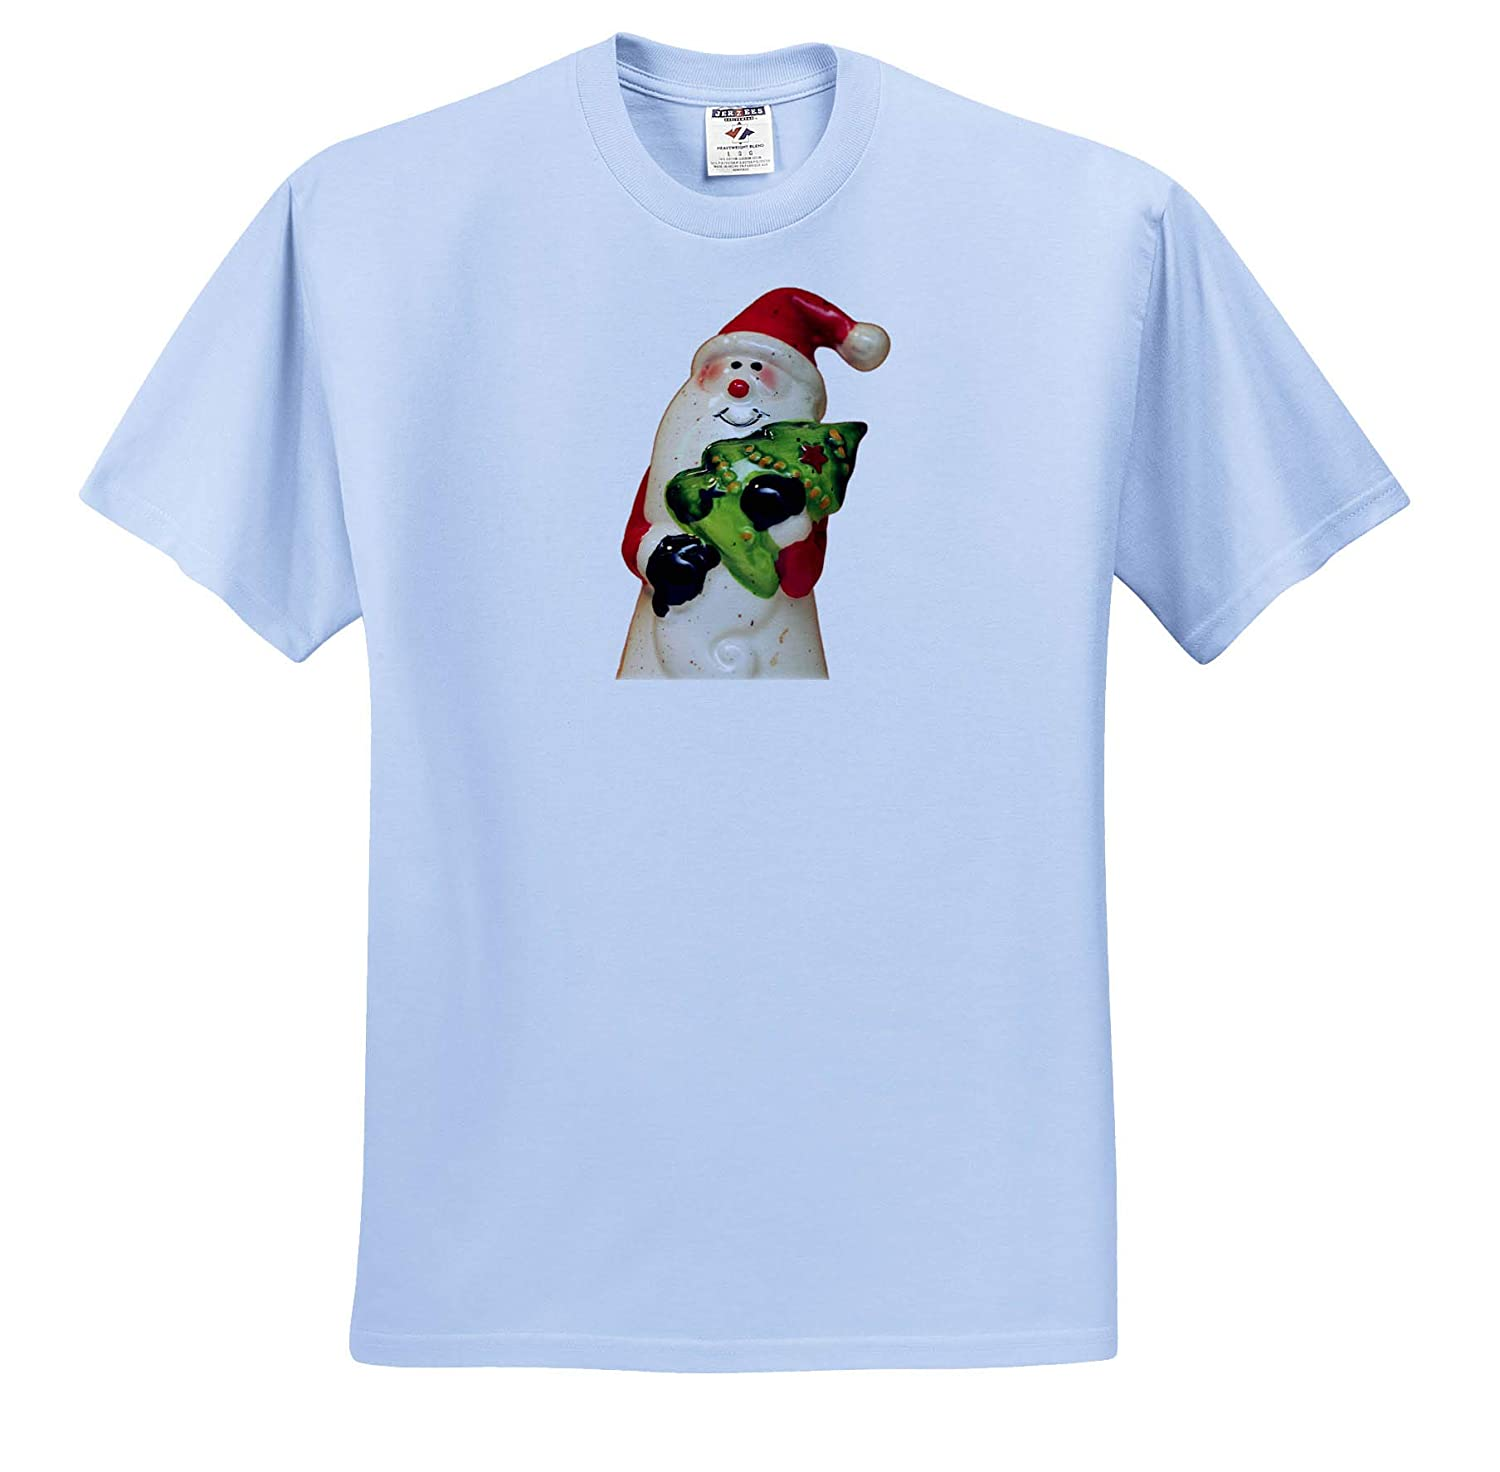 Holiday Ceramic Santa Claus Holding a Christmas Tree - T-Shirts 3dRose Stamp City Photograph of a Painted